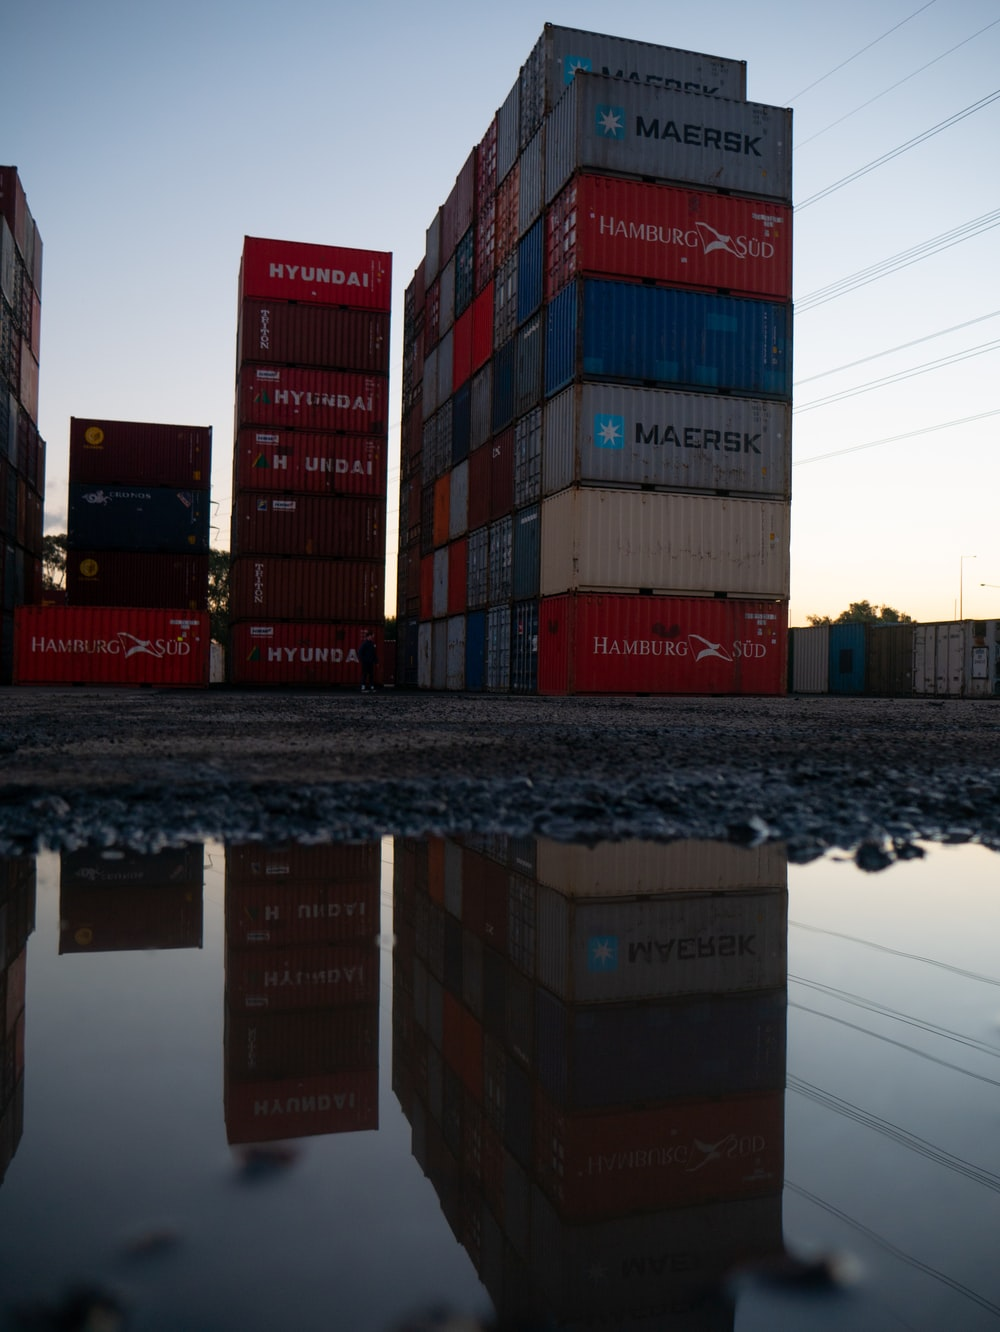 red and blue cargo containers on brown wooden dock during daytime